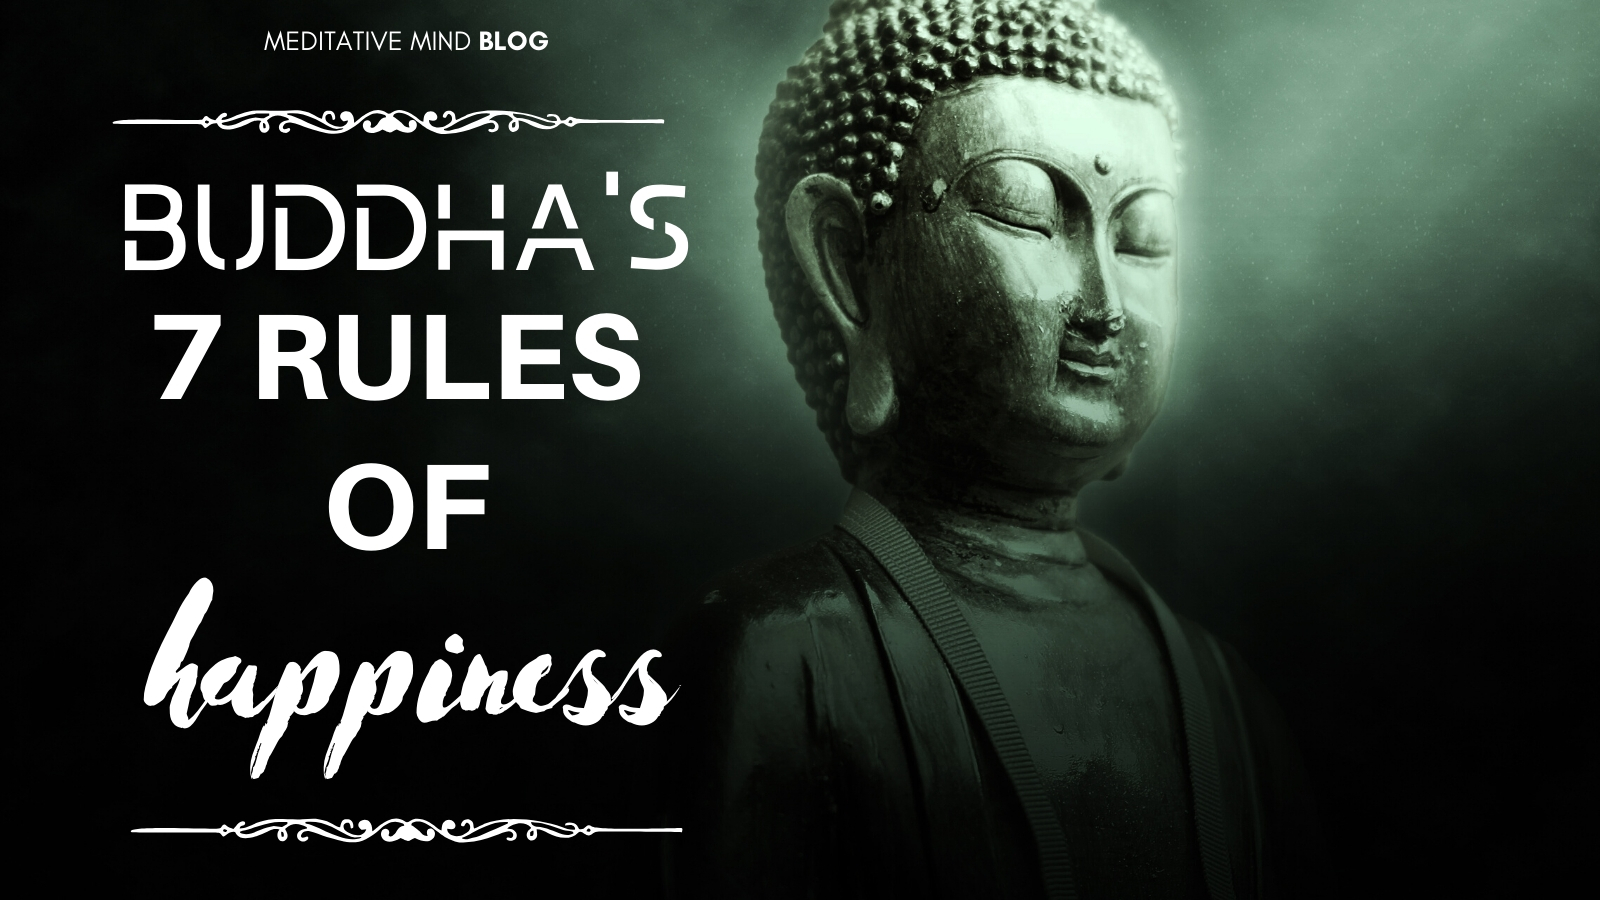 Buddha's 7 Rules of Happiness